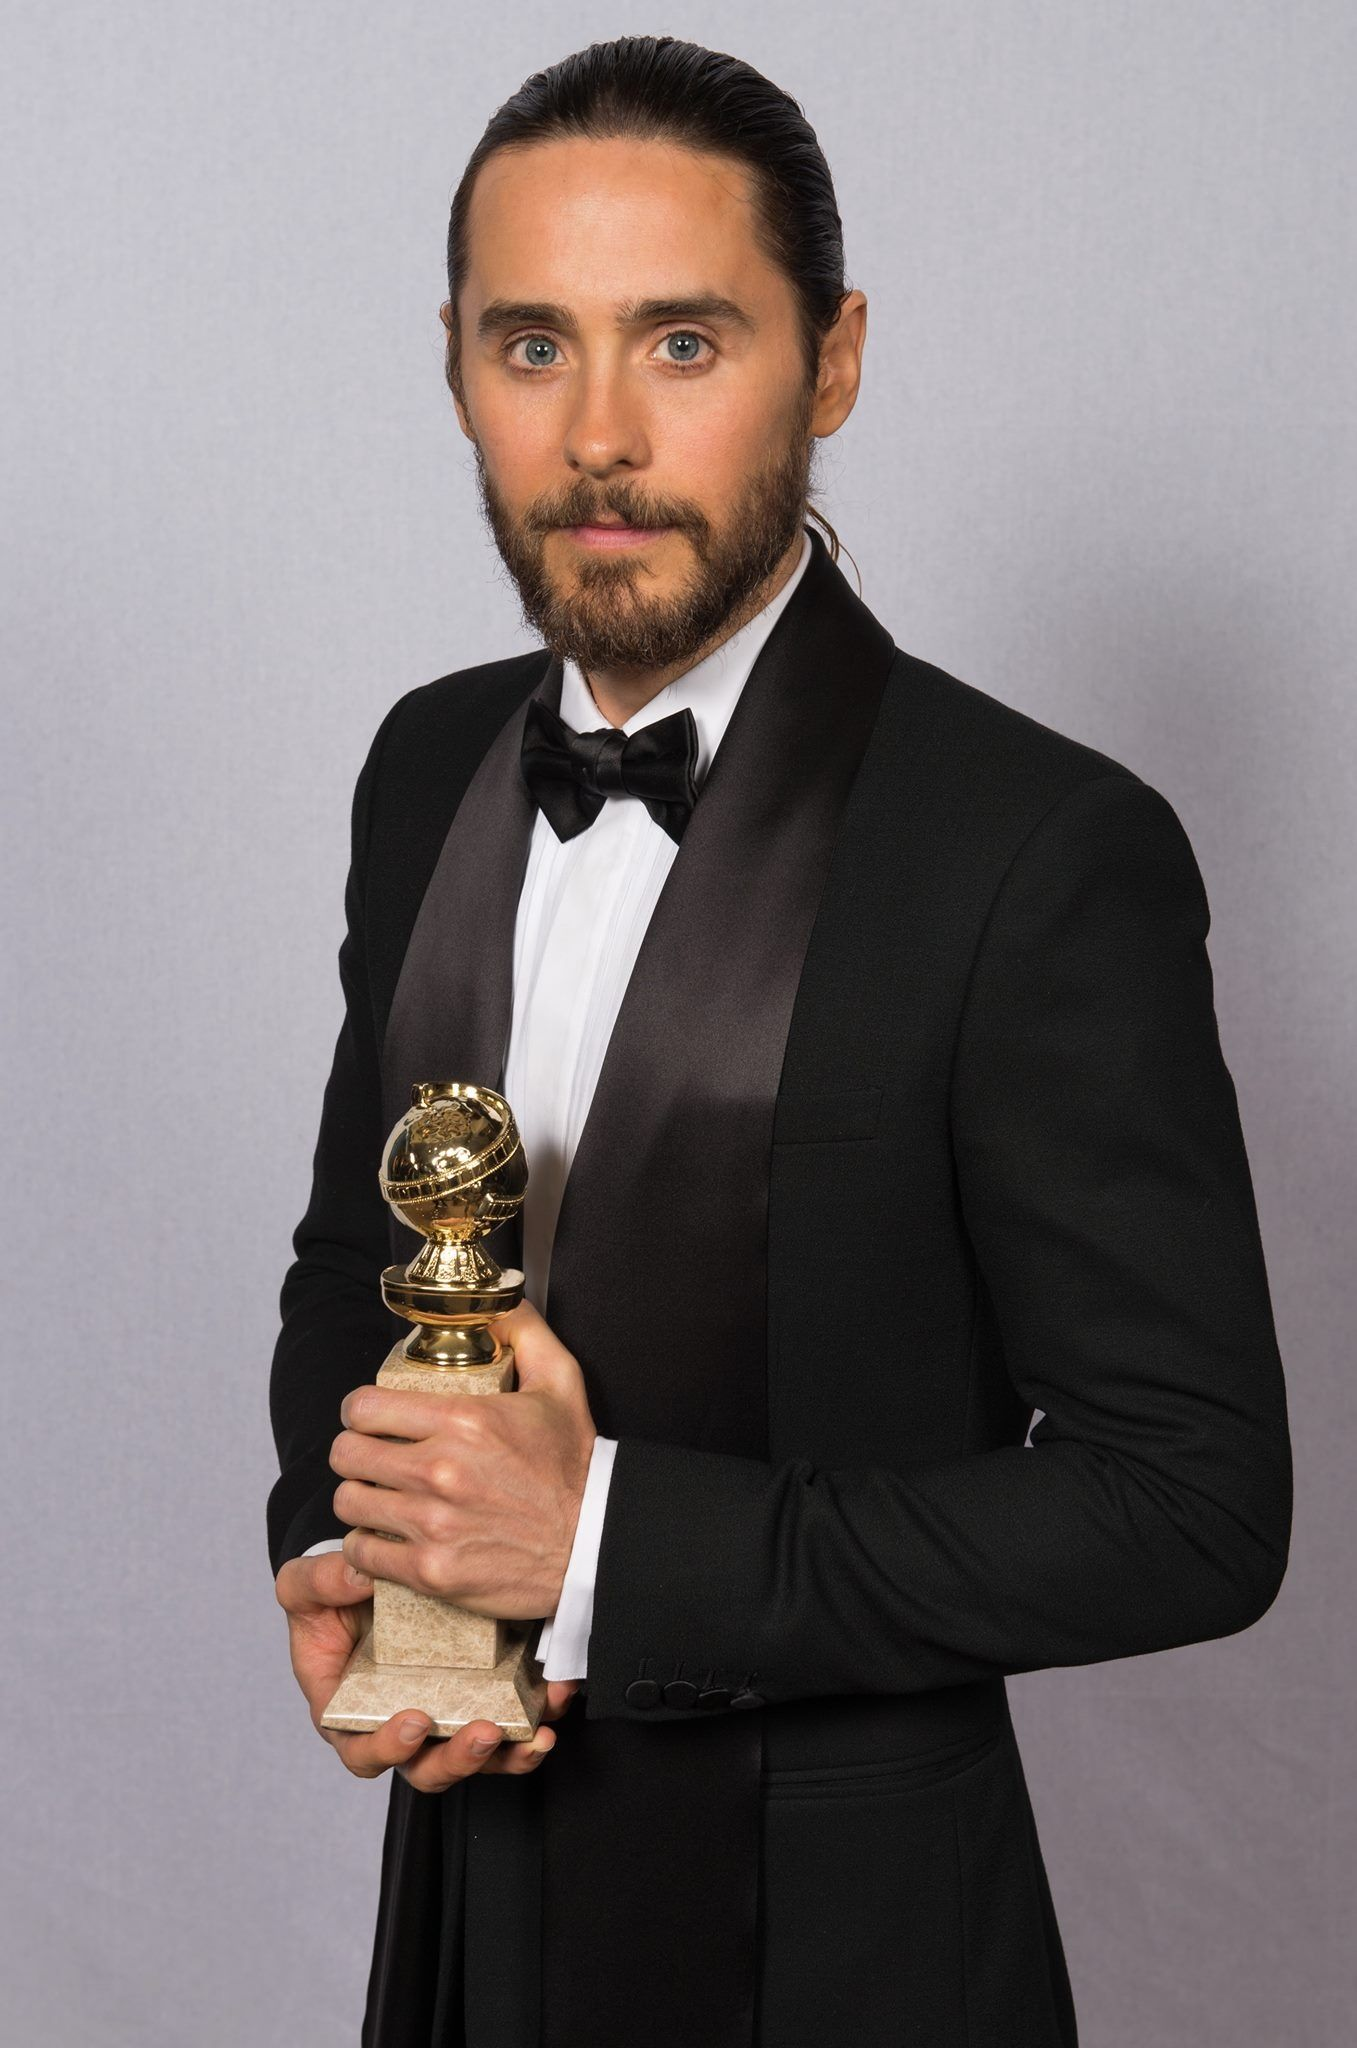 Jared Leto Wins Award For Best Supporting Actor Golden Globes